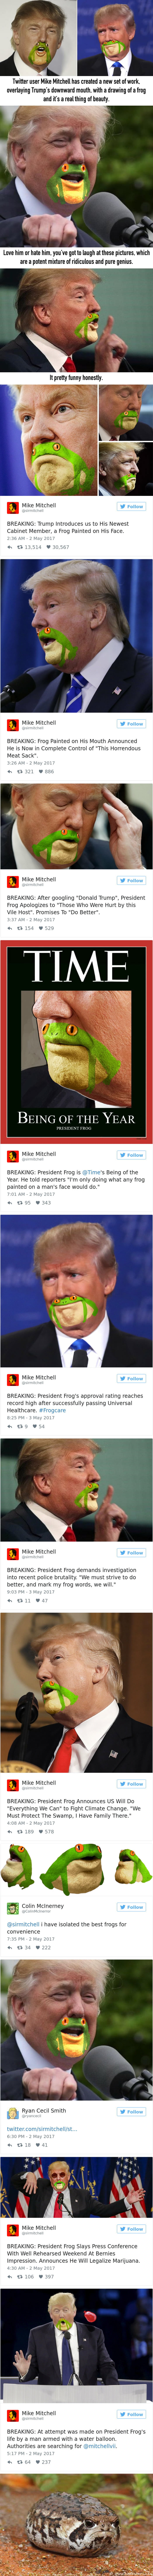 You'll never be able to unsee this frog on Donald Trump's chin